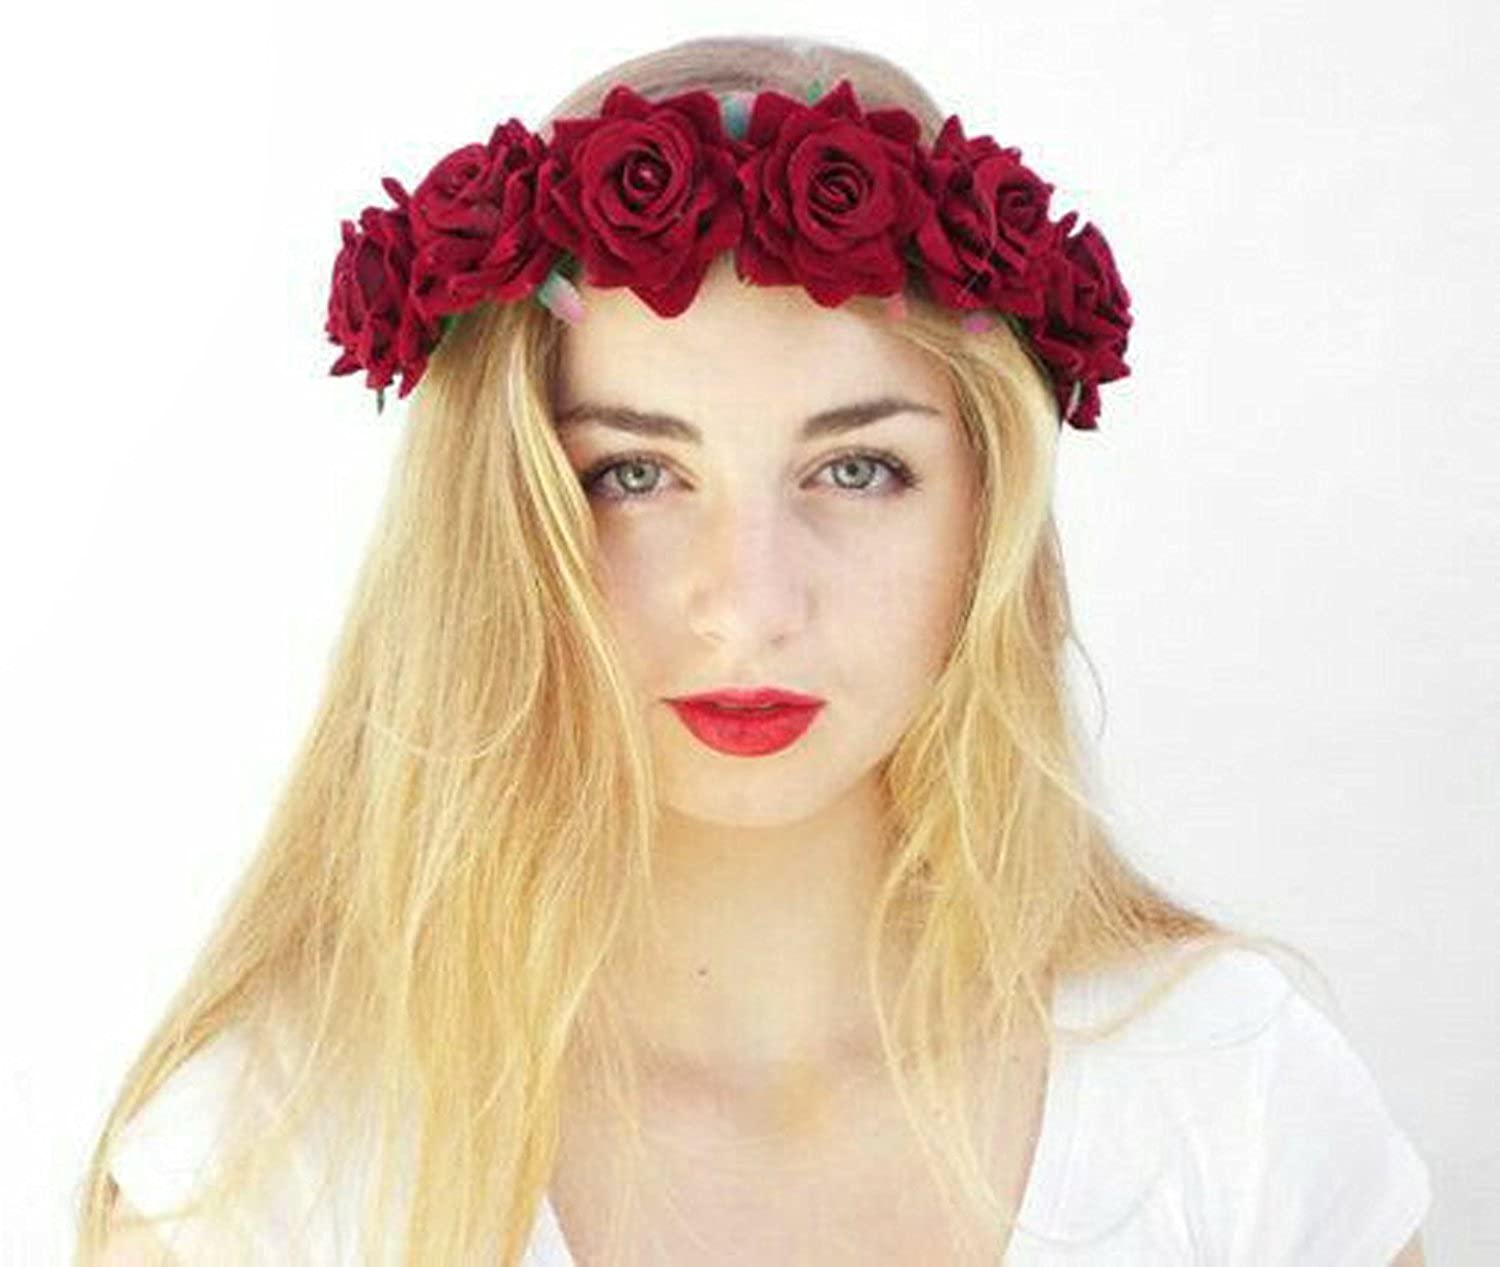 Floral Fall Rose Red Rose Flower Crown Woodland Hair Wreath Festival